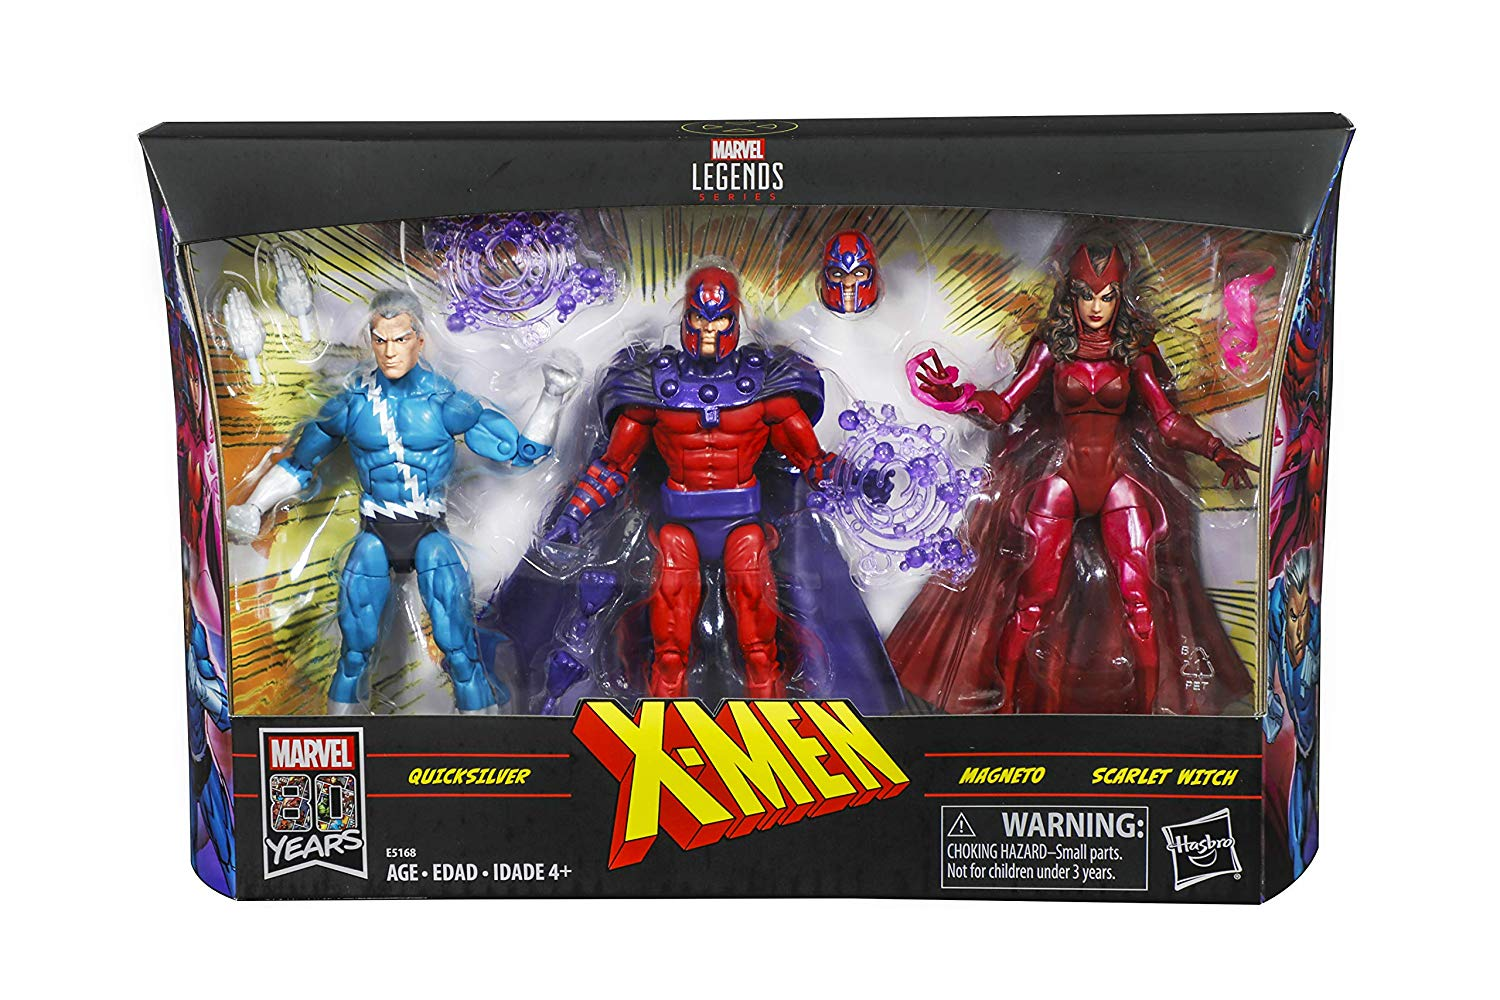 Hasbro Marvel Legends Magneto, Quicksilver & Scarlet Witch Exclusive 3-Pack Pre-Orders At Amazon